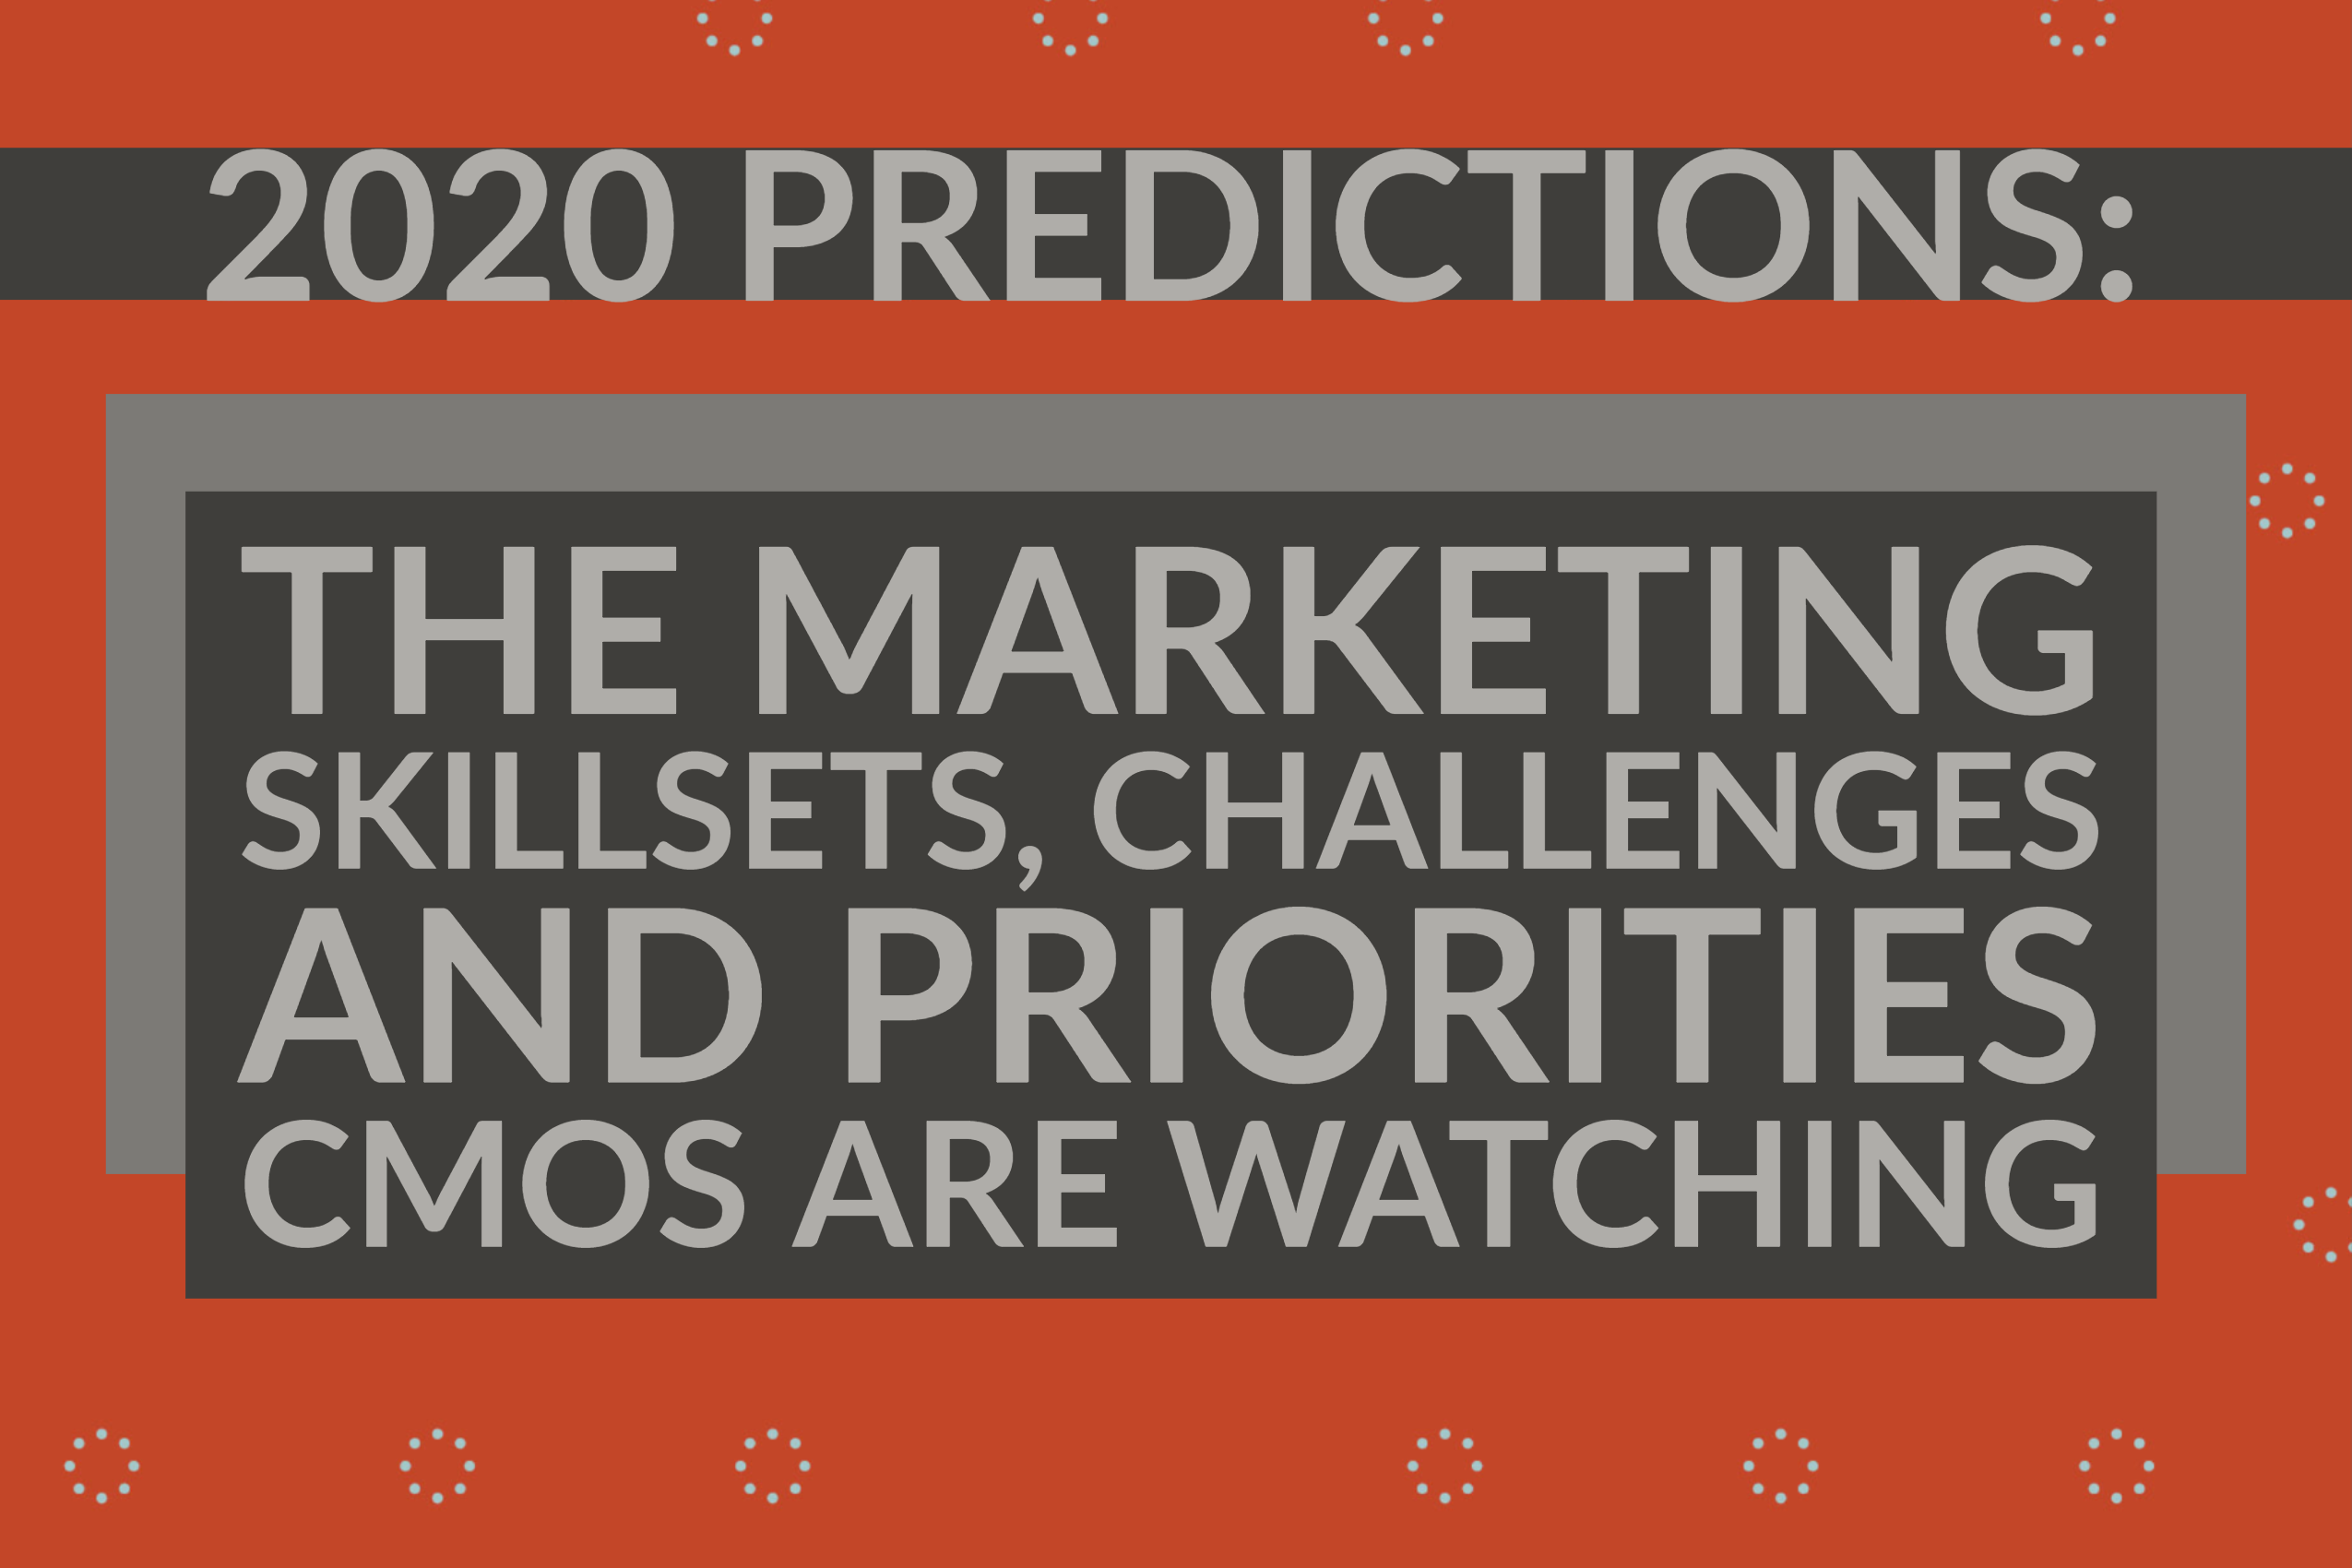 2020 Predictions_ The Marketing Skillsets, Challenges and Priorities CMOS Are Watching